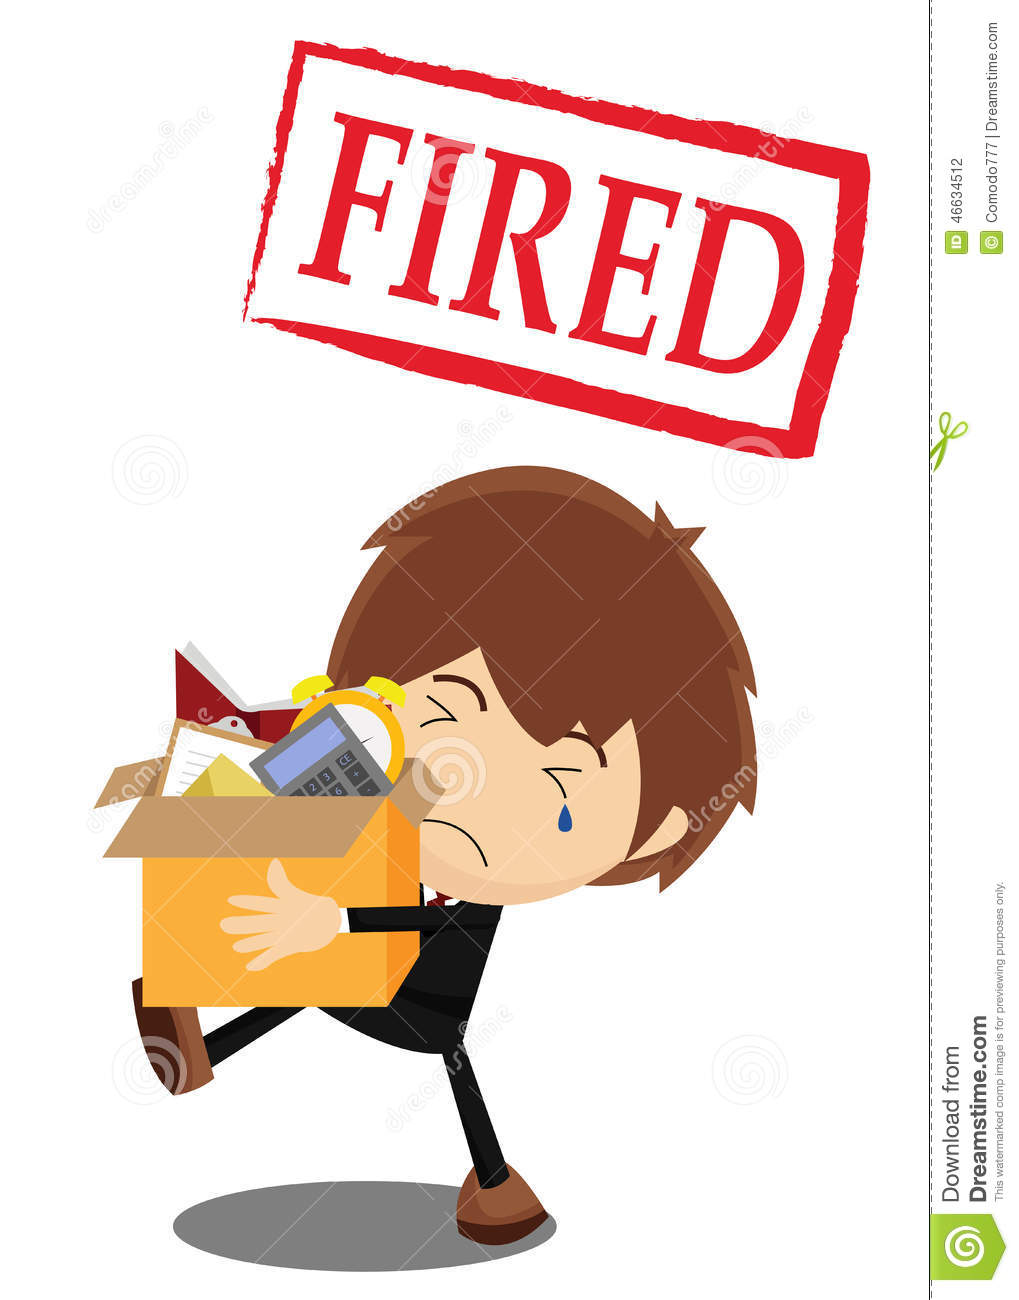 getting fired from a job In some cases, an employee can collect unemployment after being fired however, unemployment benefits are not available in all cases and sometimes being fired renders an employee ineligible for benefits.